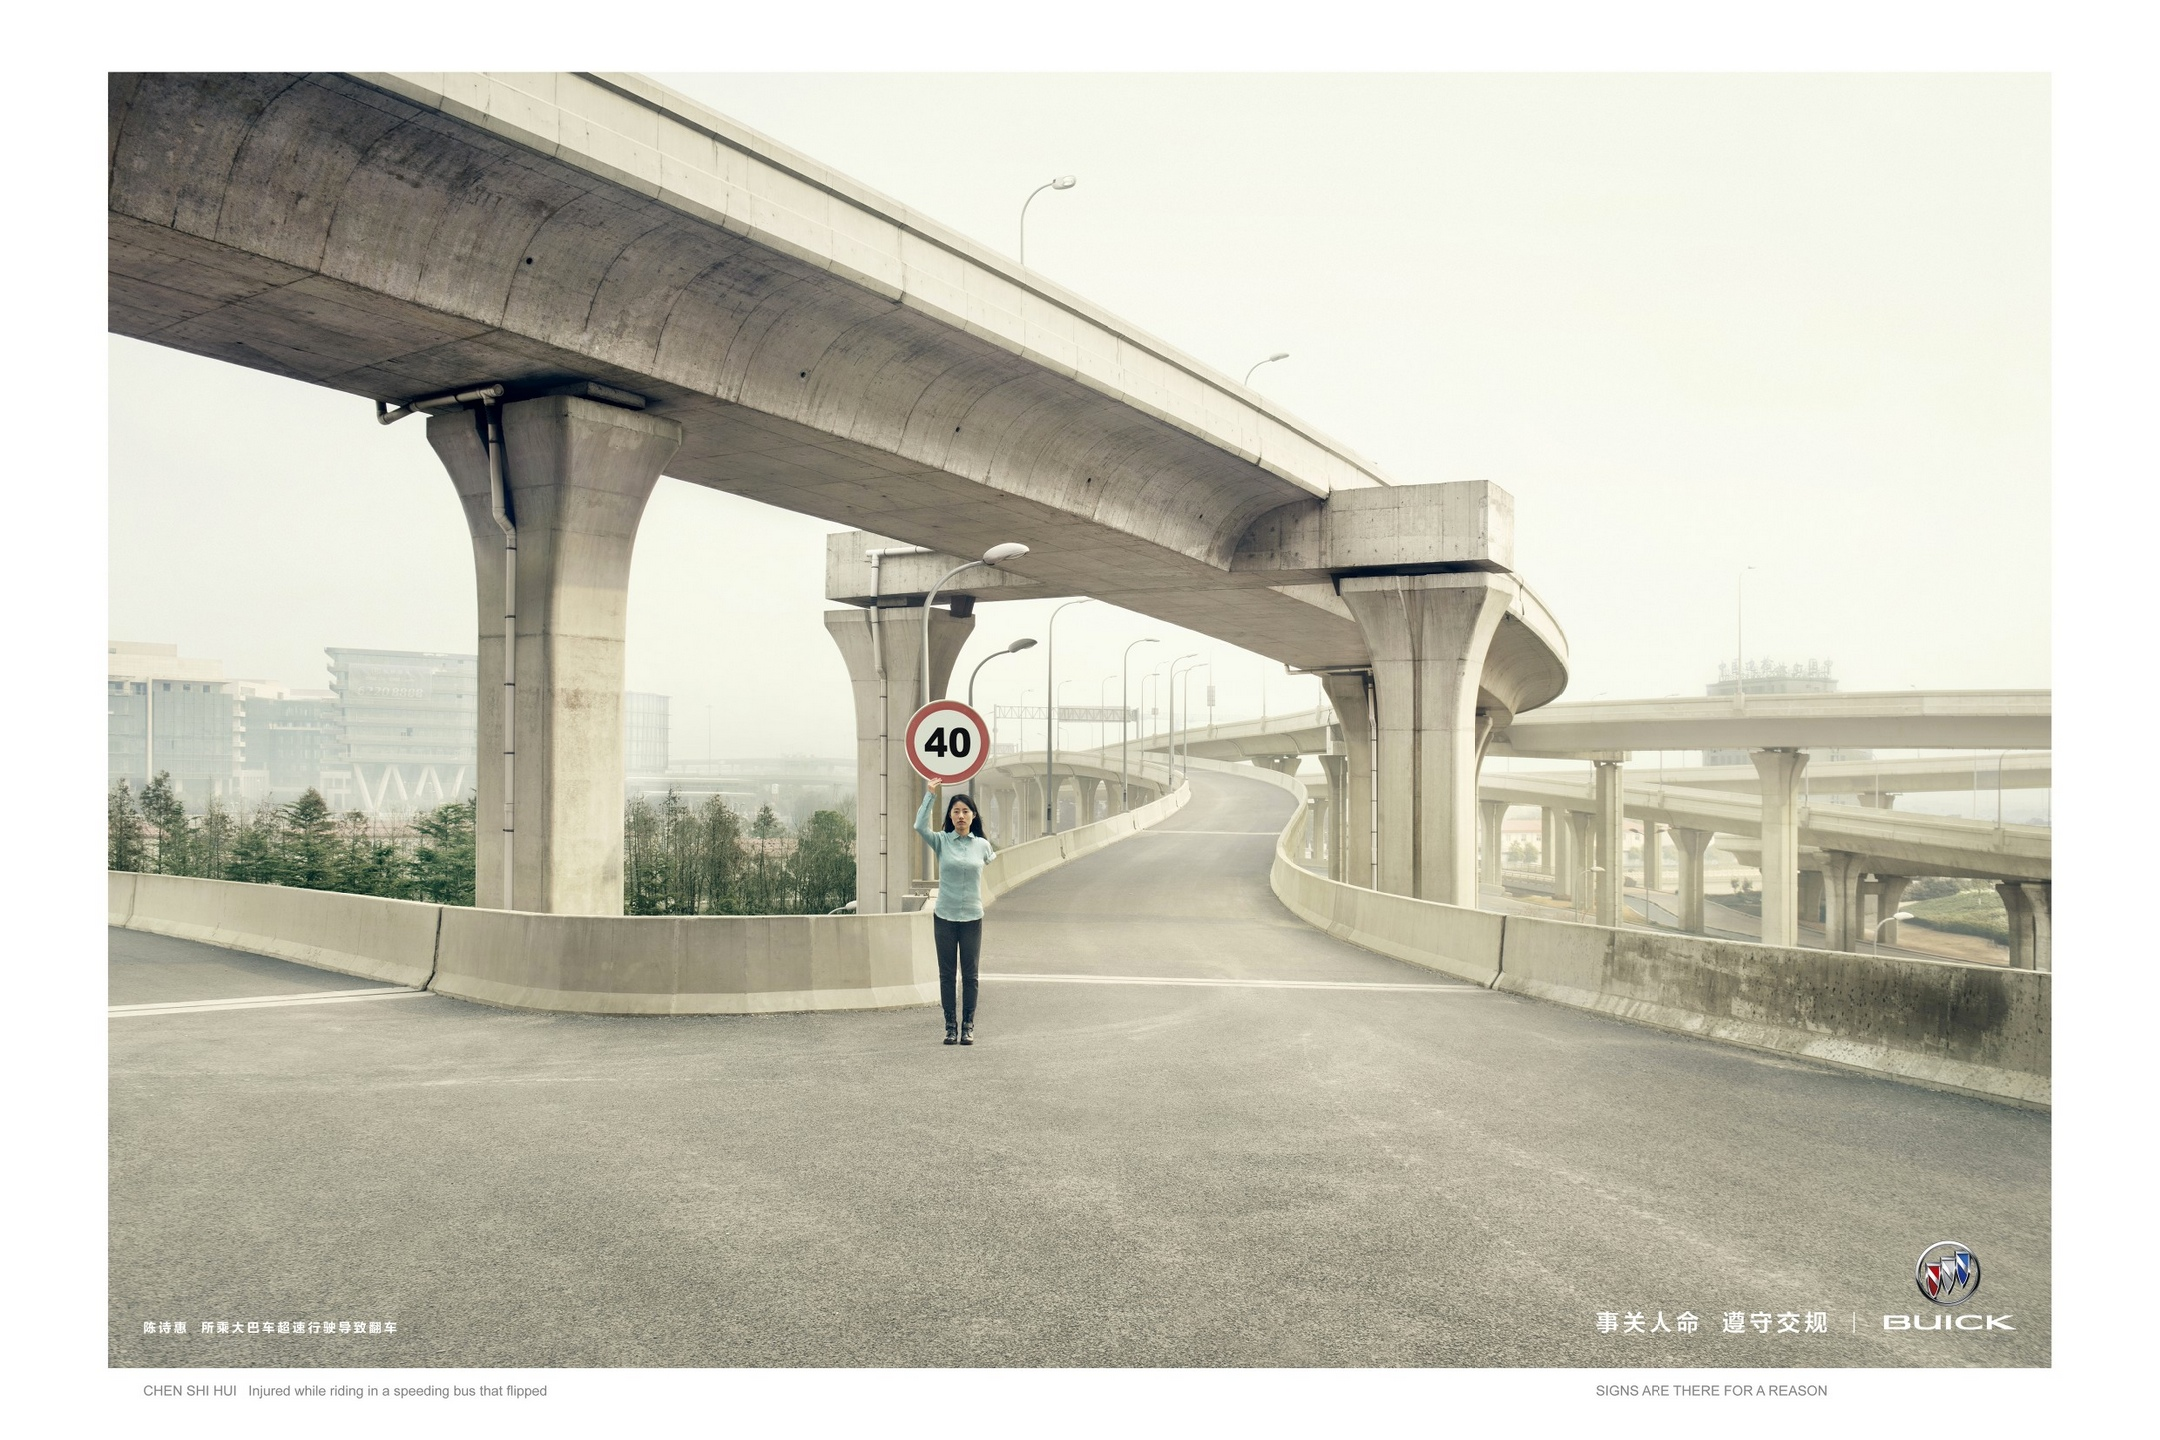 buick-road-safety-human-traffic-signs-best-print-ads-2015-lowe-china-gunn-report-3